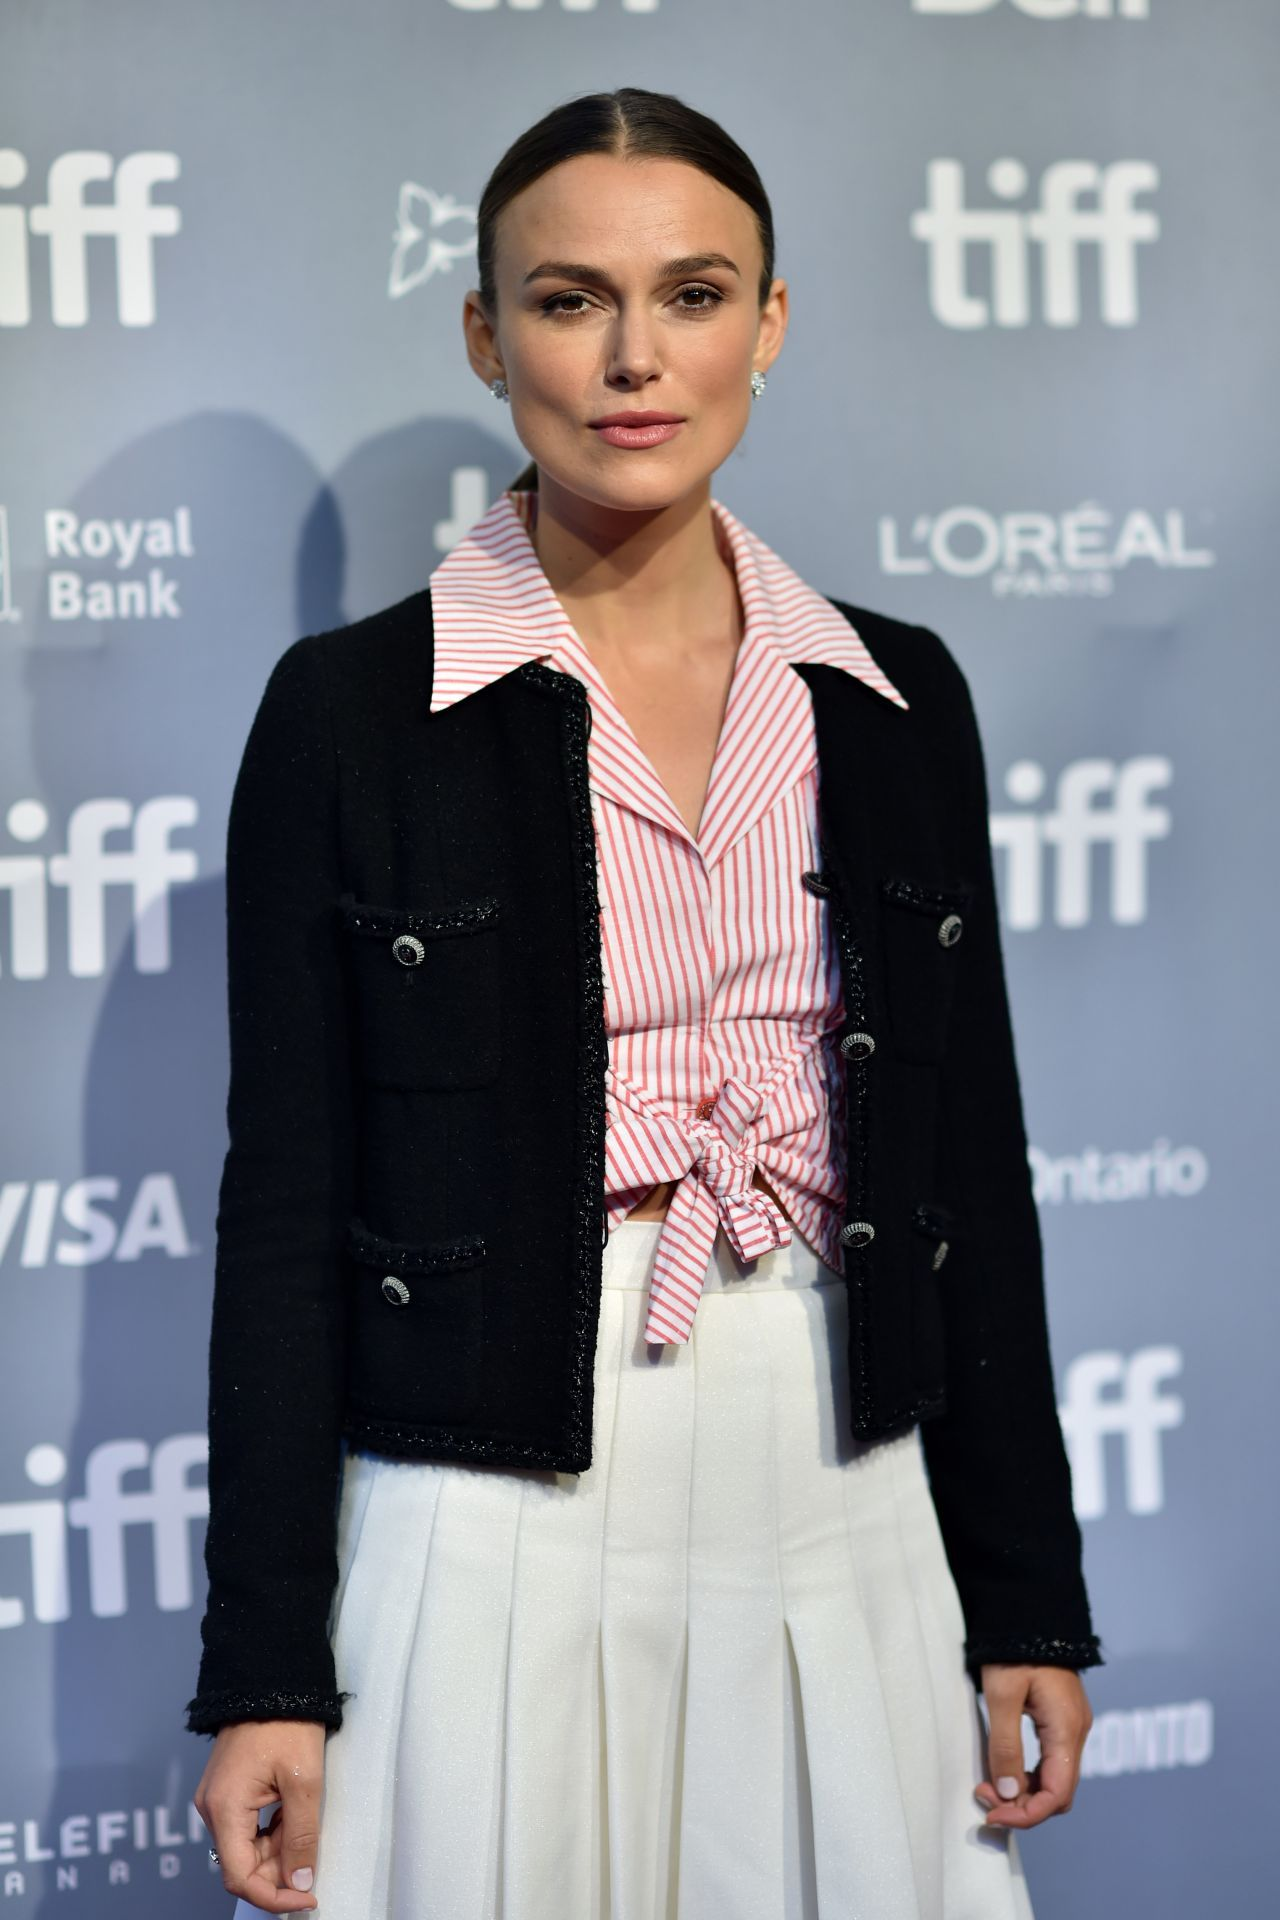 Knightley keira talks imitation game alexander lewis recommend dress in autumn in 2019